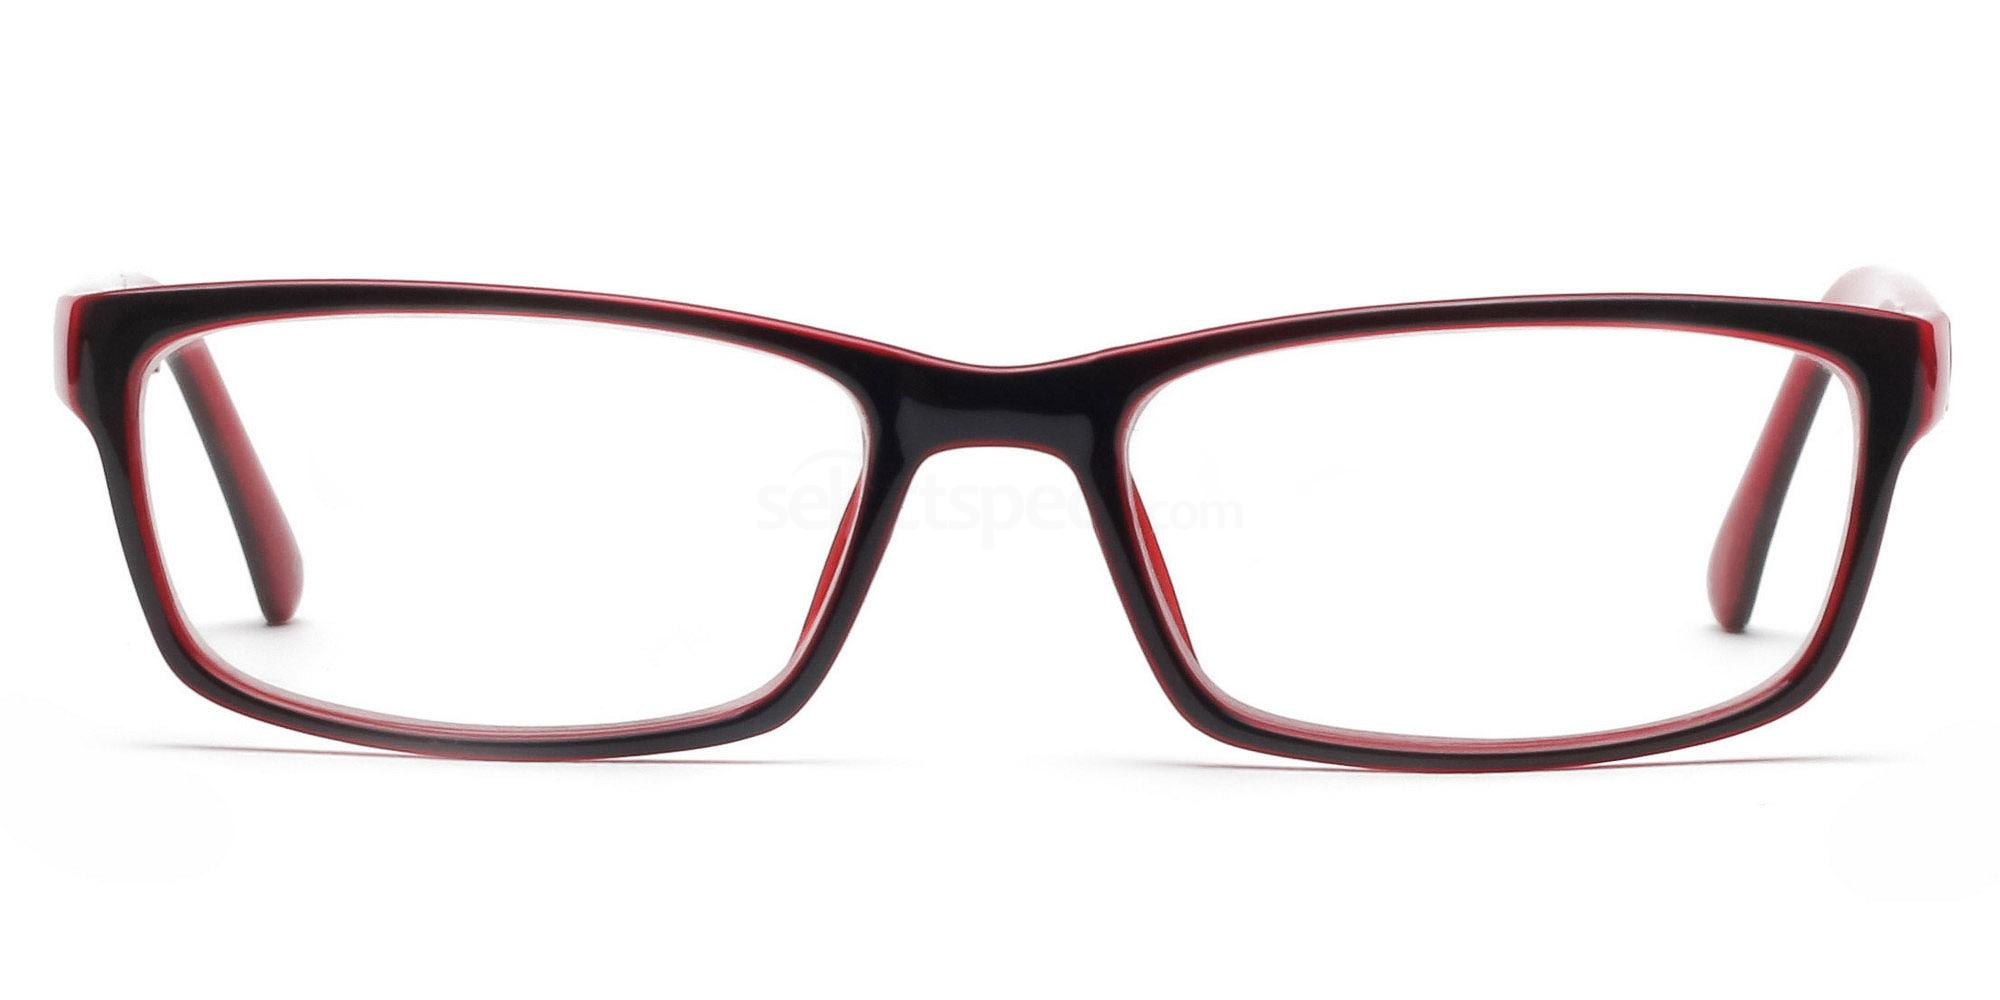 COL.23 2426 - Black and Red Glasses, Savannah